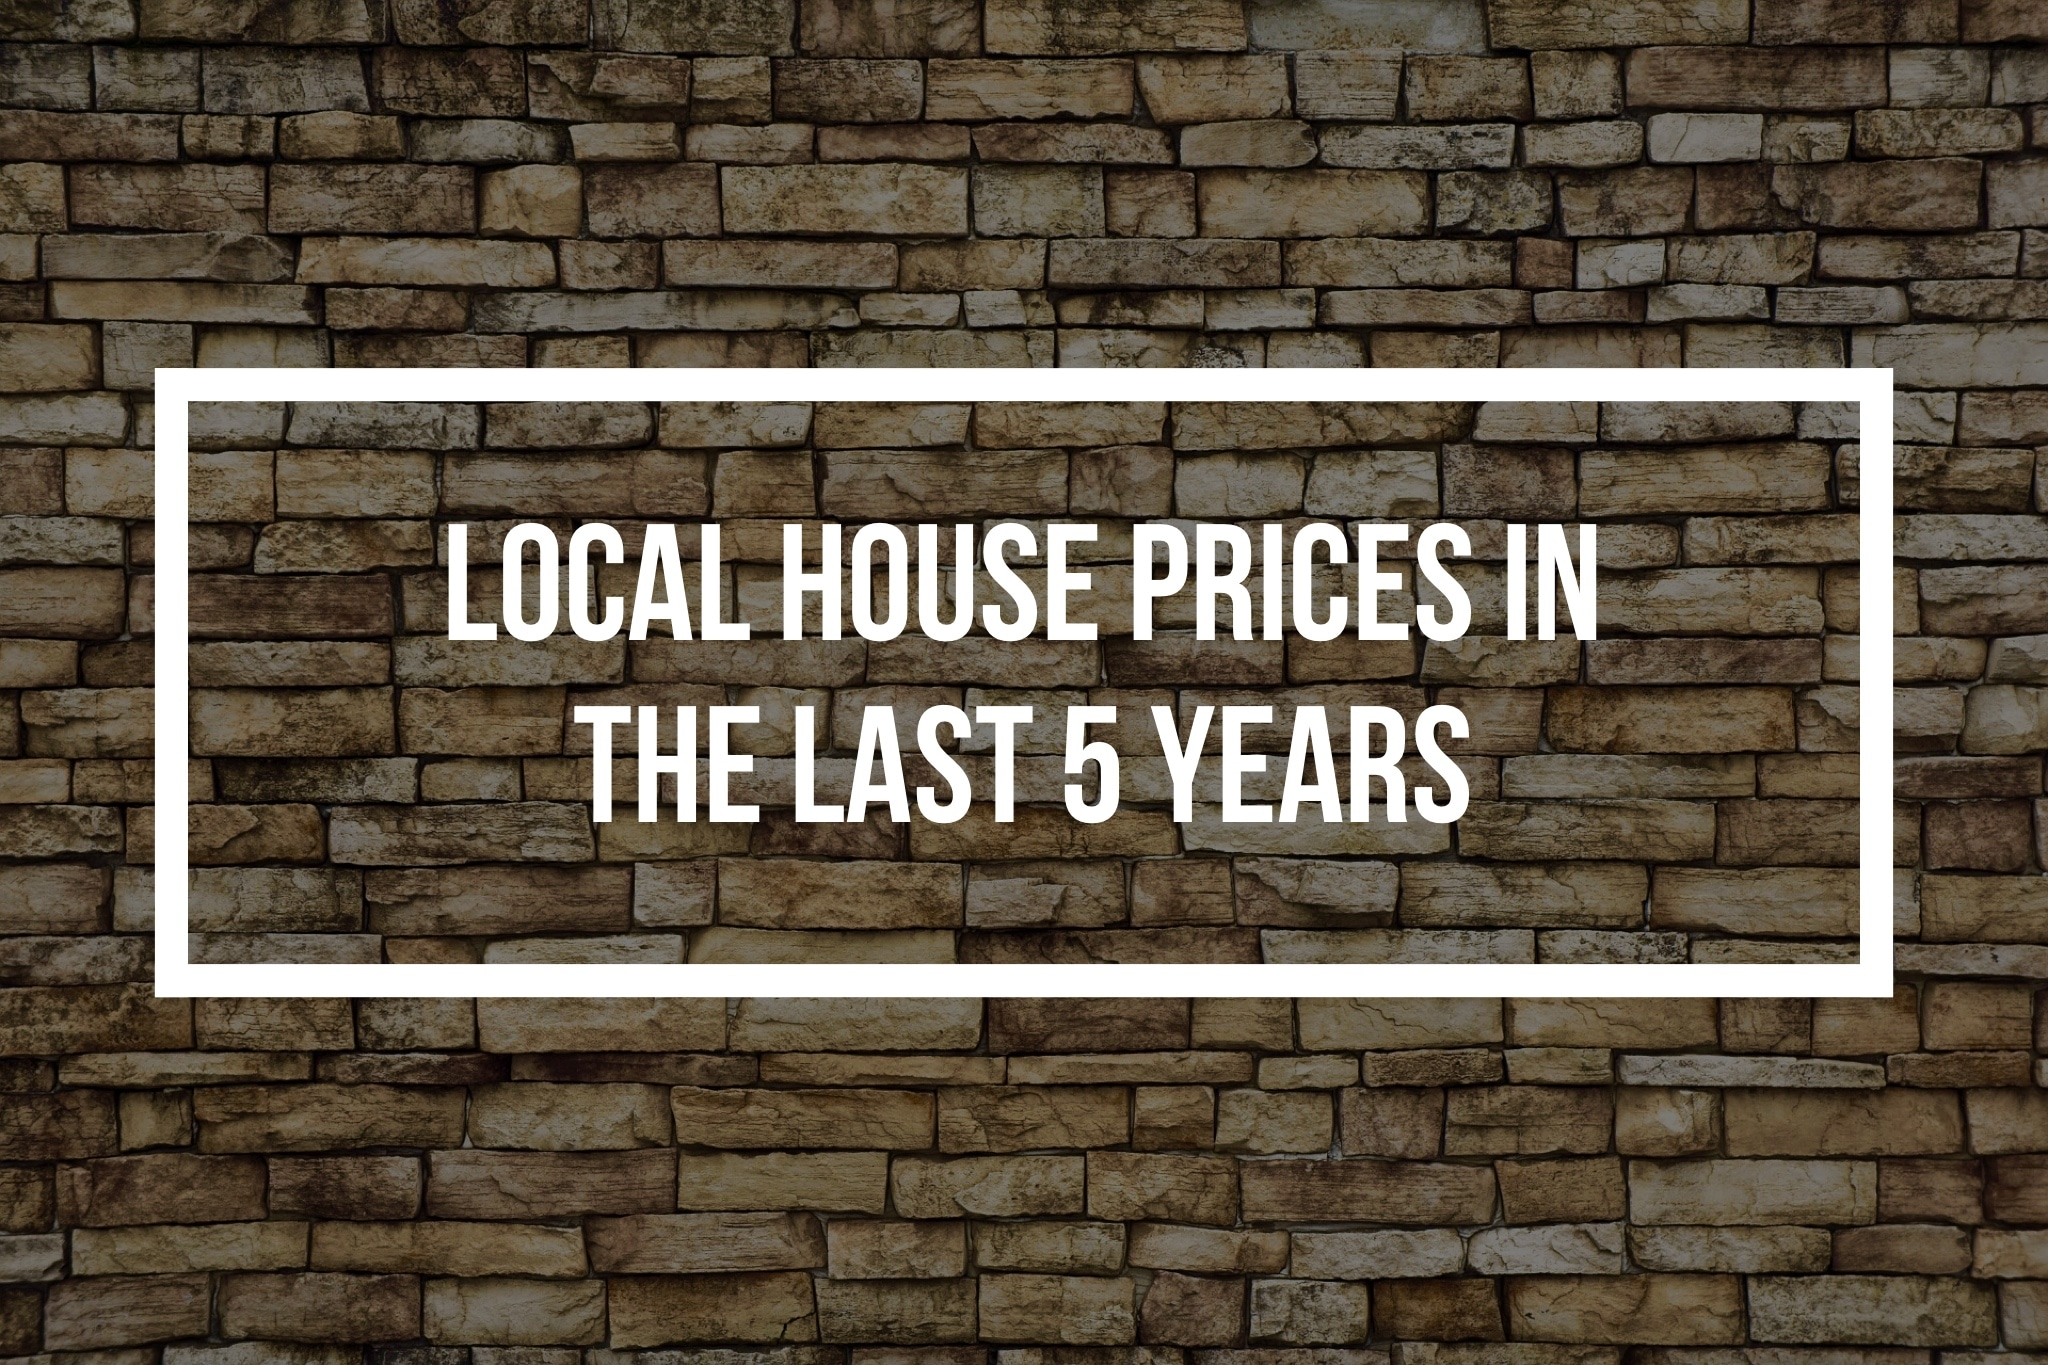 Canterbury House Prices up 30.8% in the last 5 Years